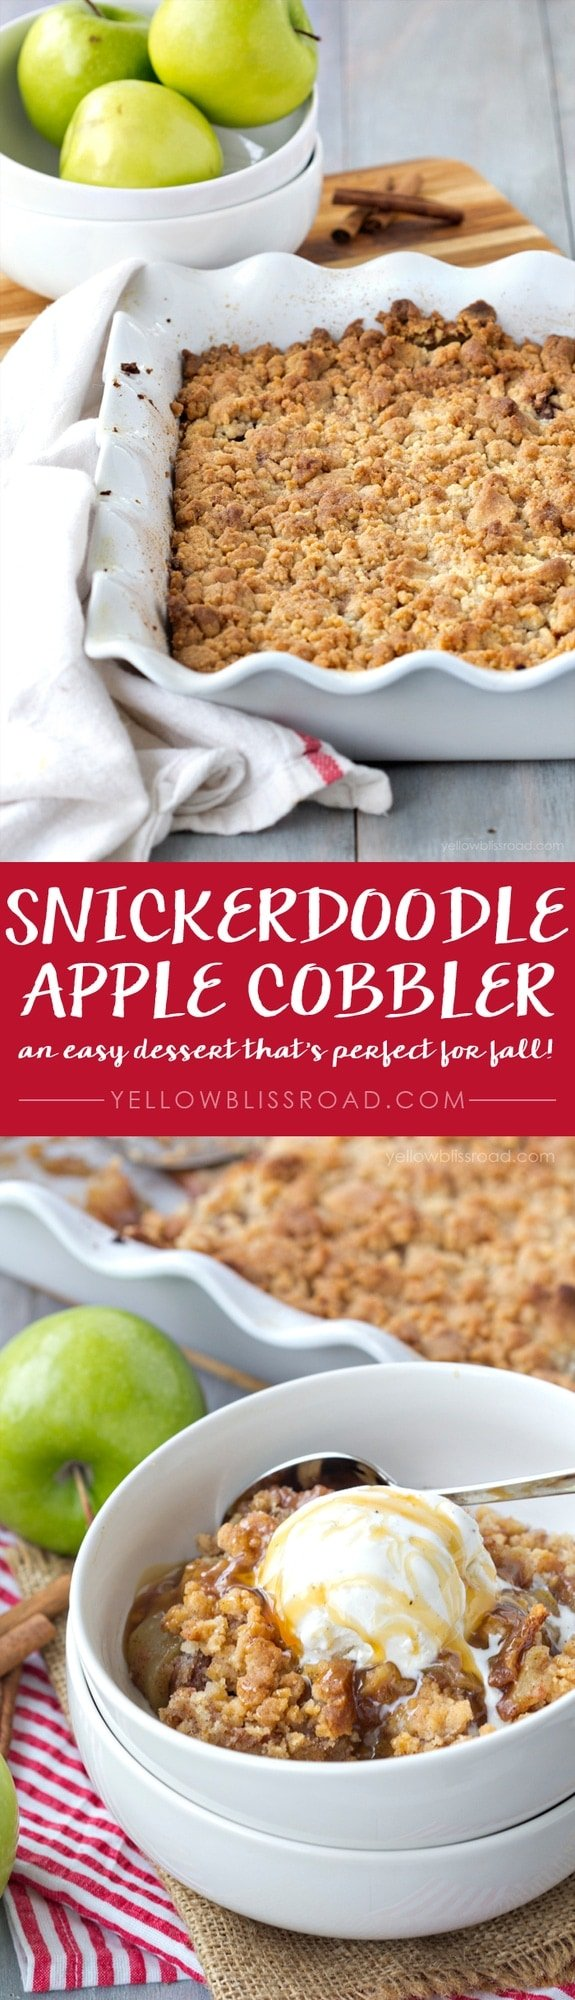 Snickerdoodle Apple Cobbler - Just a few ingredients are needed to make this fresh, delicious dessert that's perfect for fall!